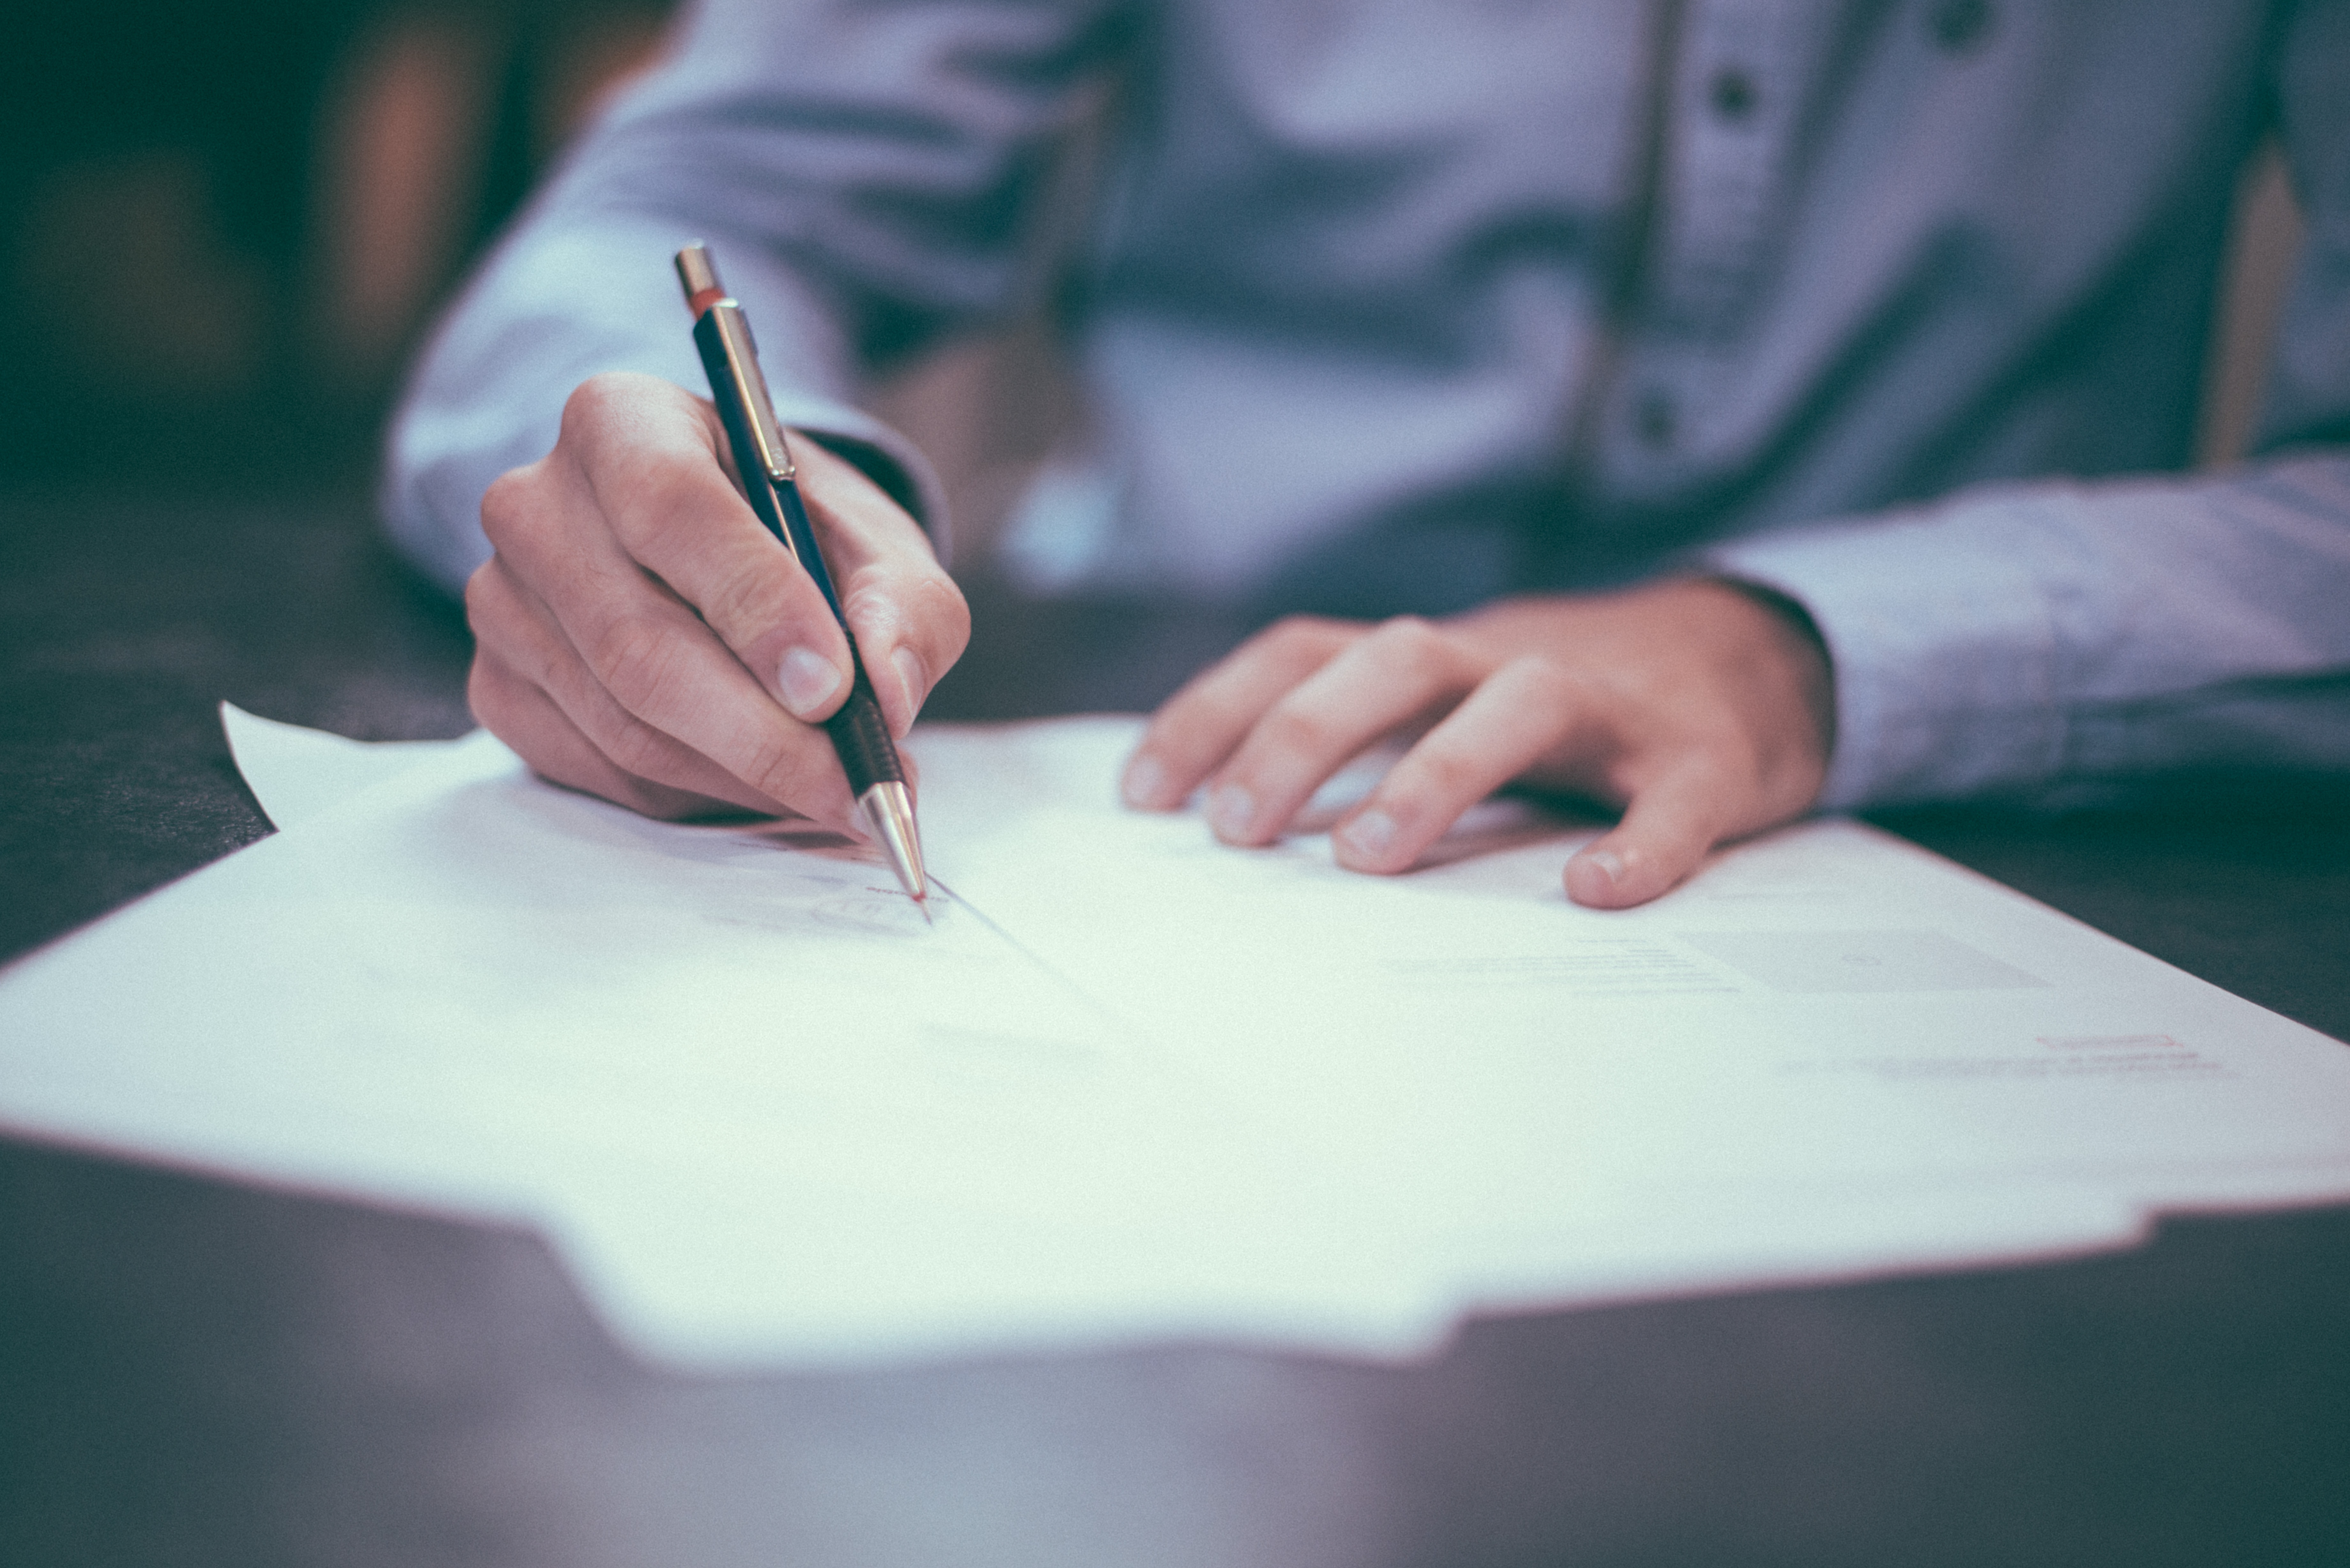 Man in a shirt signing some papers